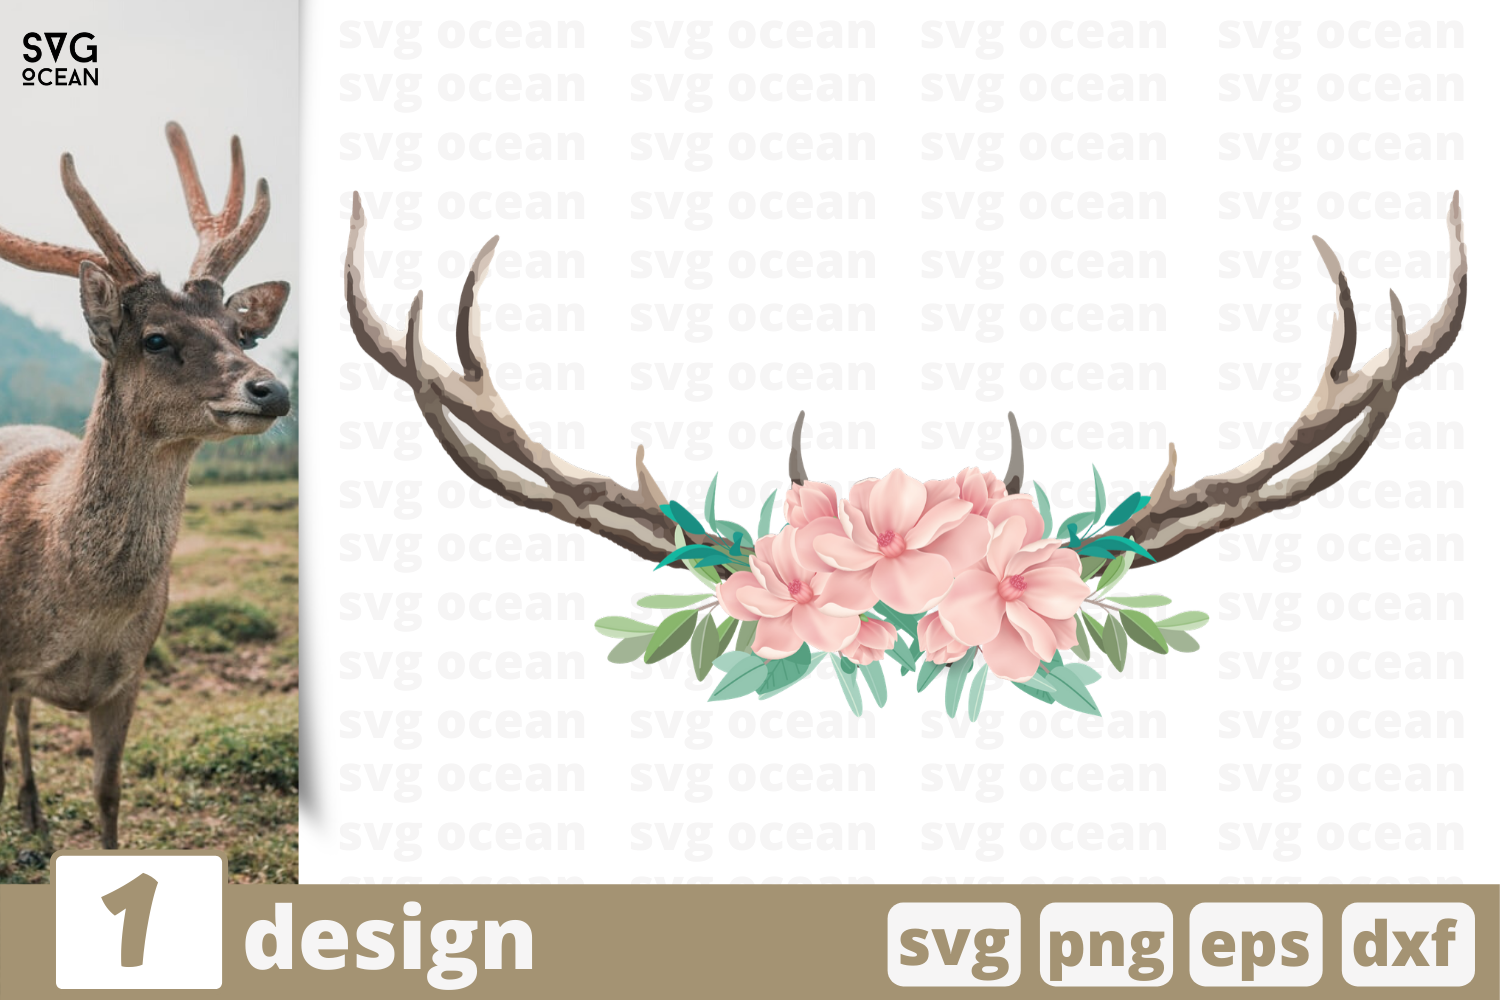 1 Deer Horns Svg Bundle Horns Cricut Svg By Svgocean